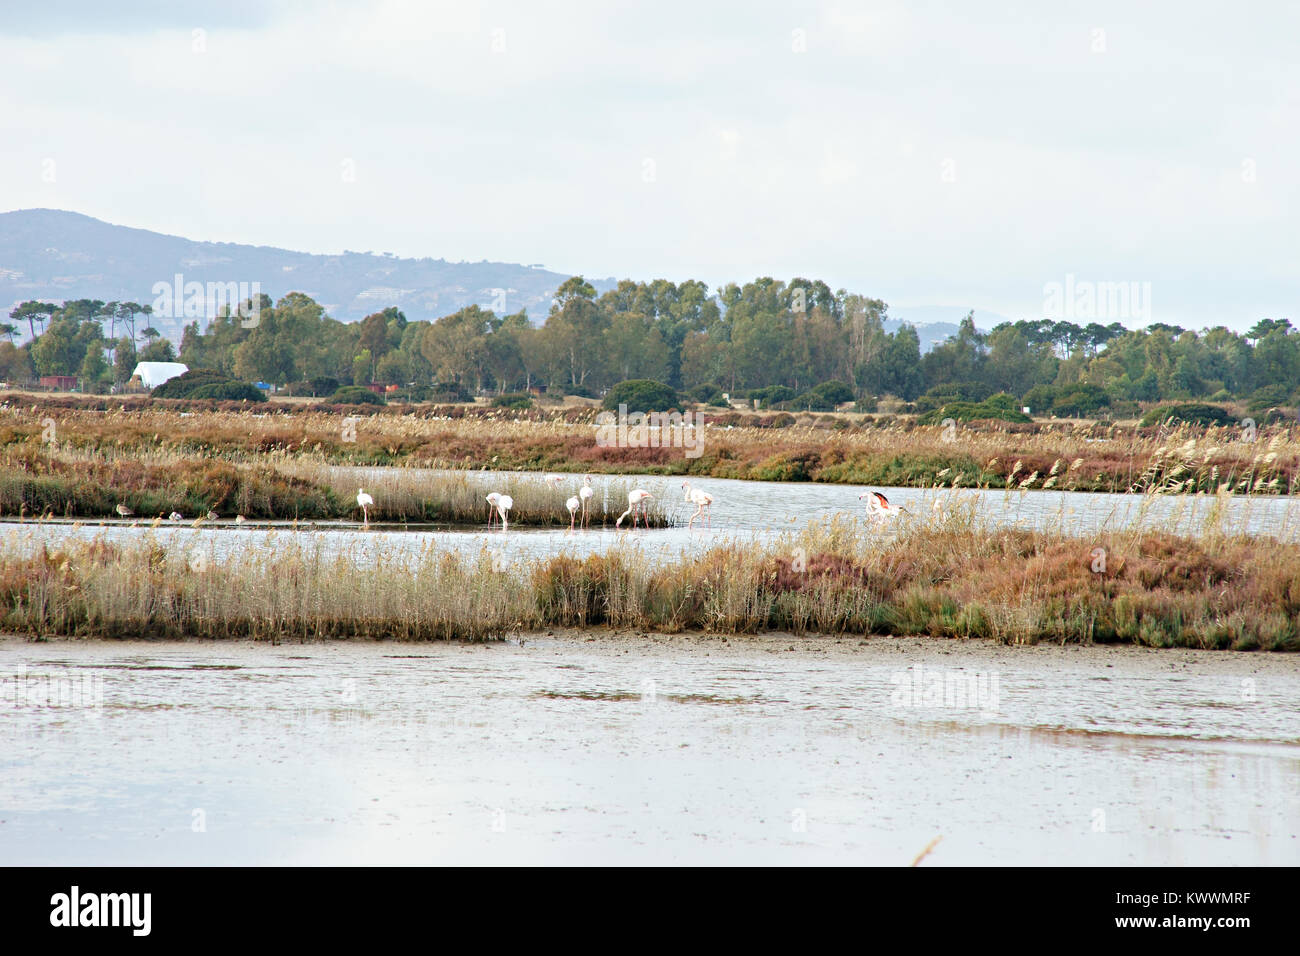 Flamingos in WWF natural reserve of Orbetello, lagoon, Tuscany, Italy - Stock Image